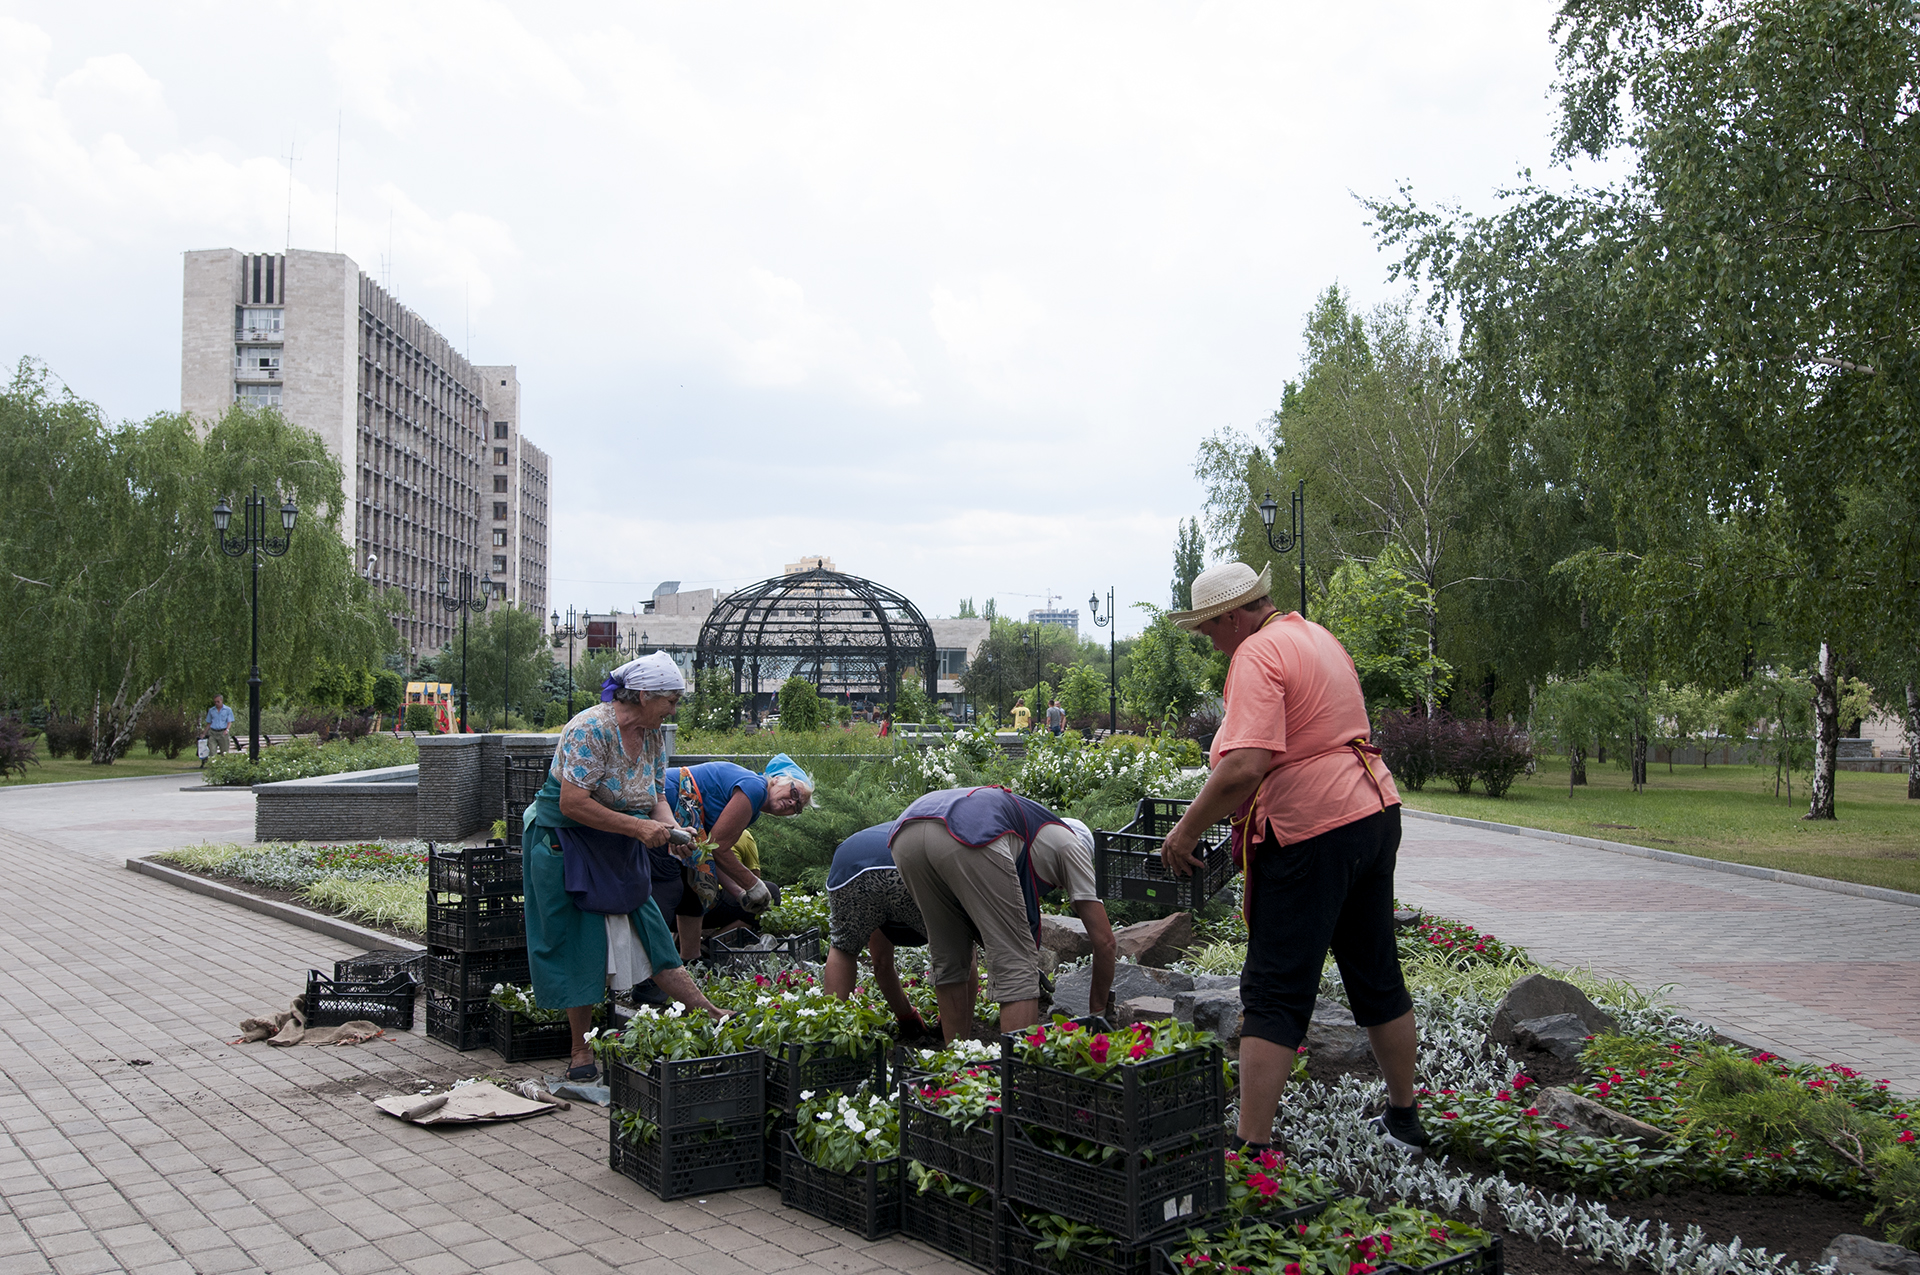 Old women gardening in the regional administrative building's park